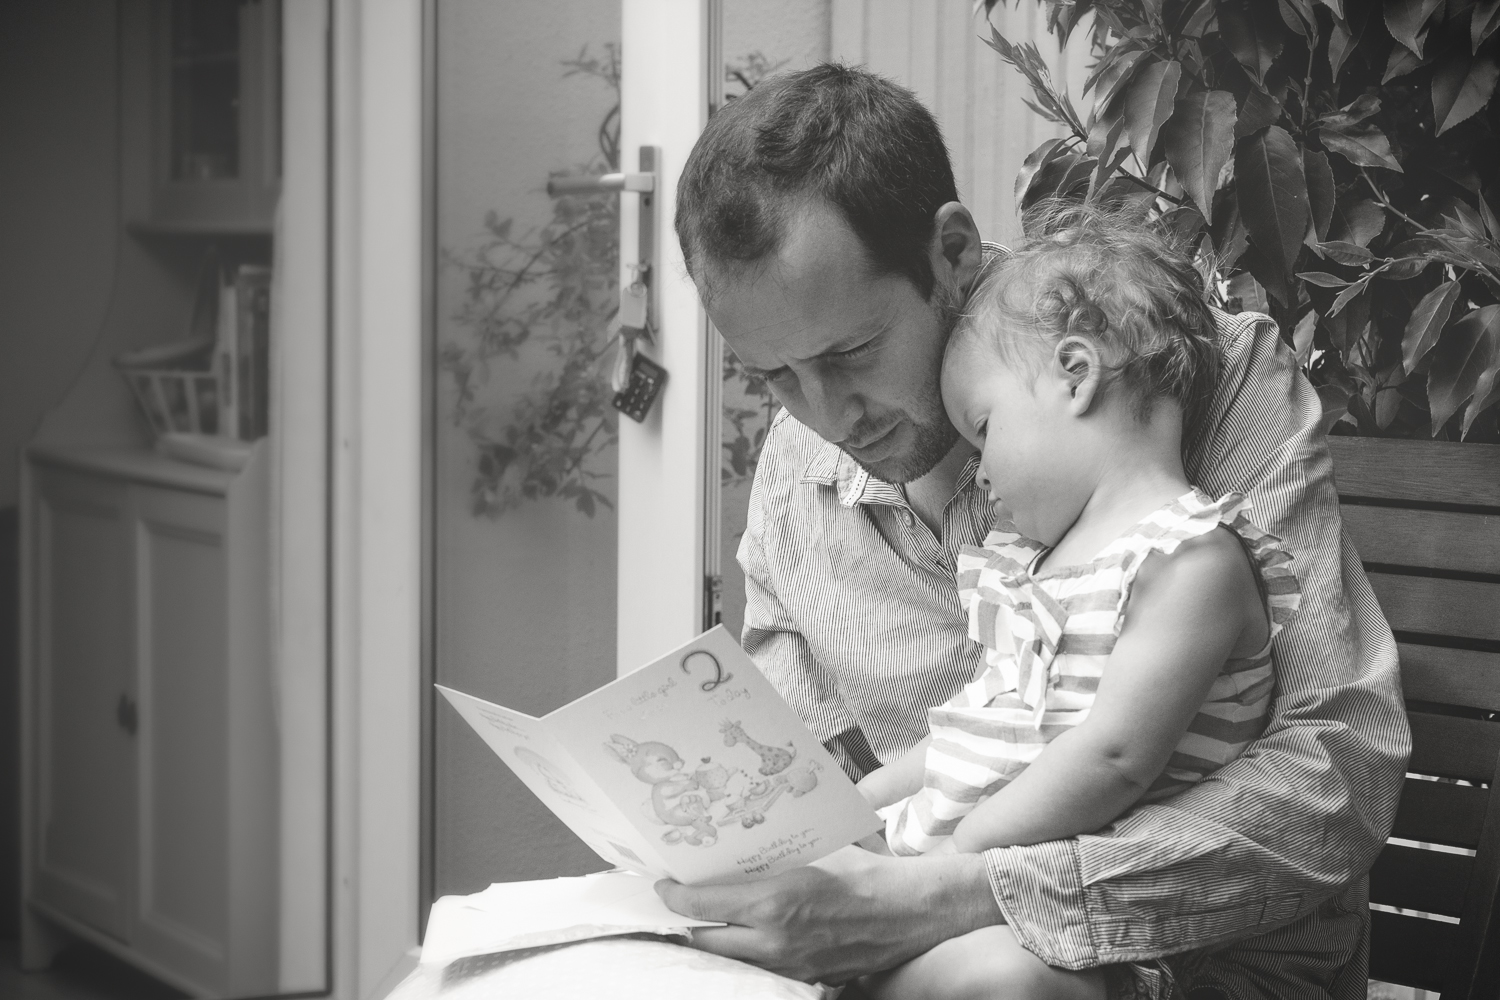 A dad reads a birthday card to his daughter on her second birthday in the garden